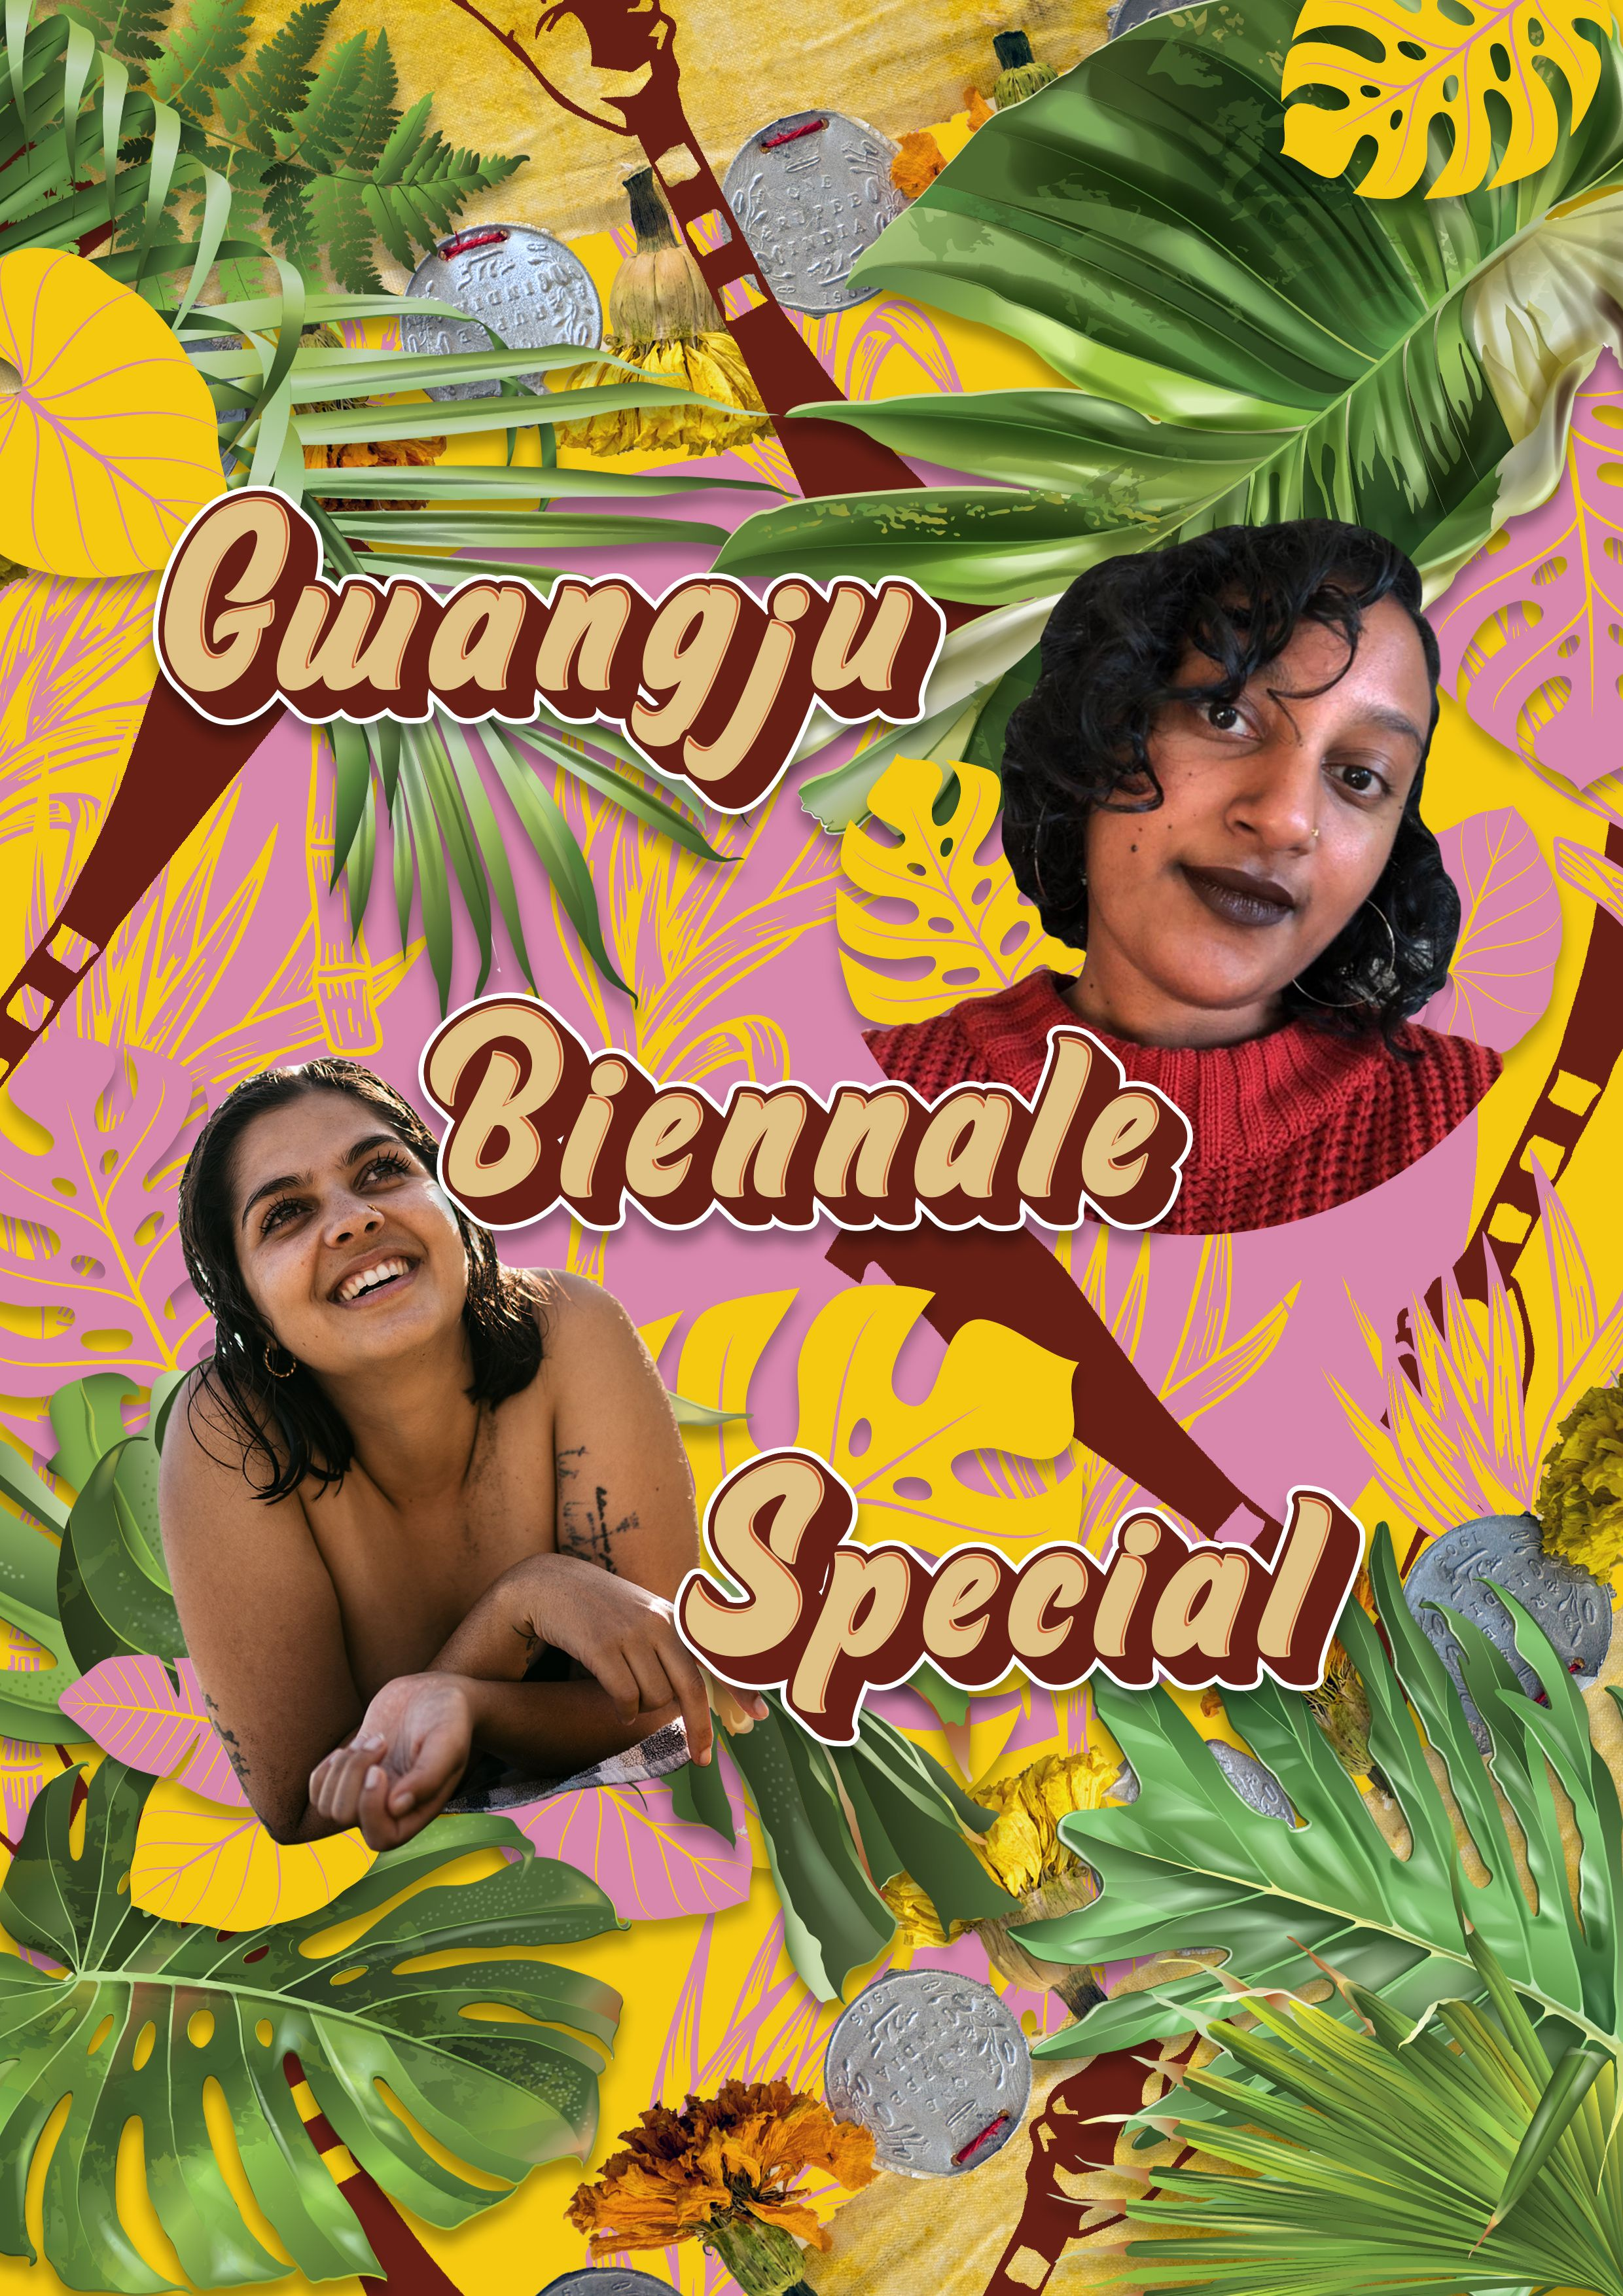 """Image collage. Images of Esha (right) and Quishile (left) smiling. In the middle is a text that reads: """"Gwangju Biennale Special"""". Background is colourful with graphics of leaves and machete knives, and images of dried flowers and tropical leaves."""